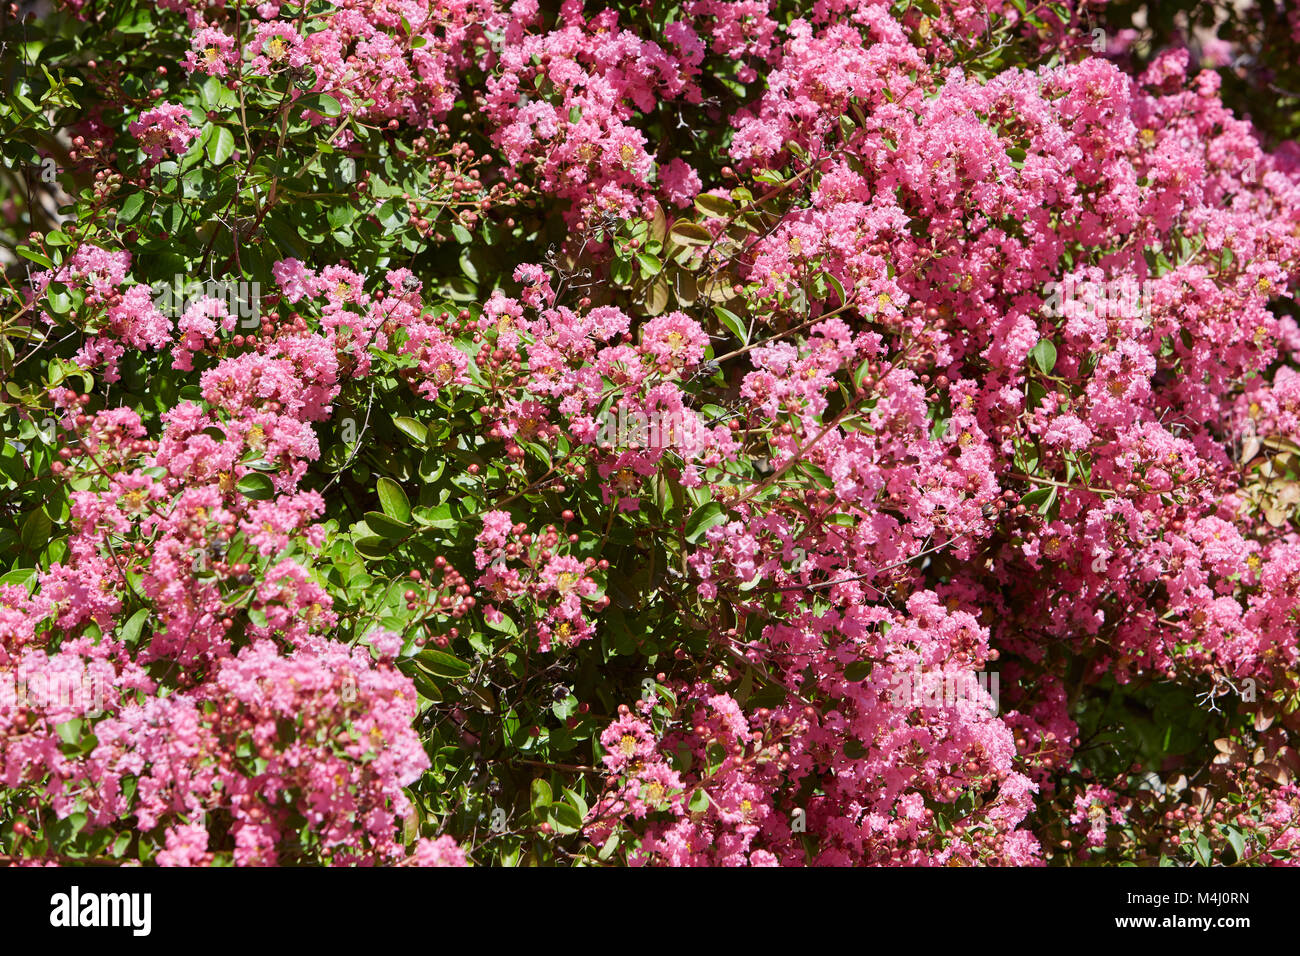 Pink Flowers Bush Background In A Sunny Summer Day Stock Photo